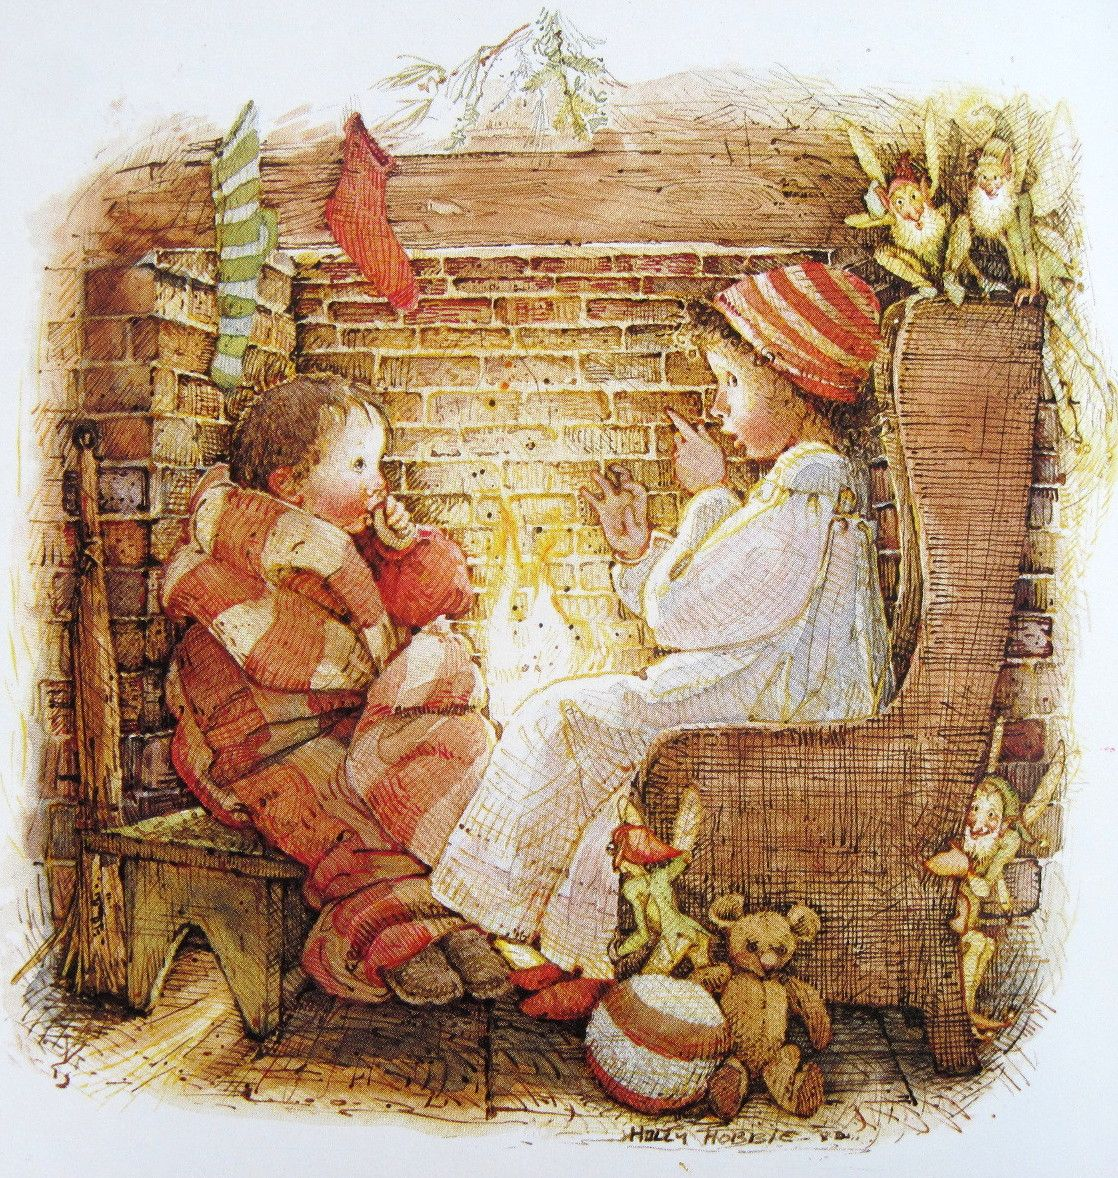 The Art of Holly Hobbie - The huge fireplace at the heart of the home made the perfect setting for a Christmas Eve illustration.                                                               Kaiya and Silas